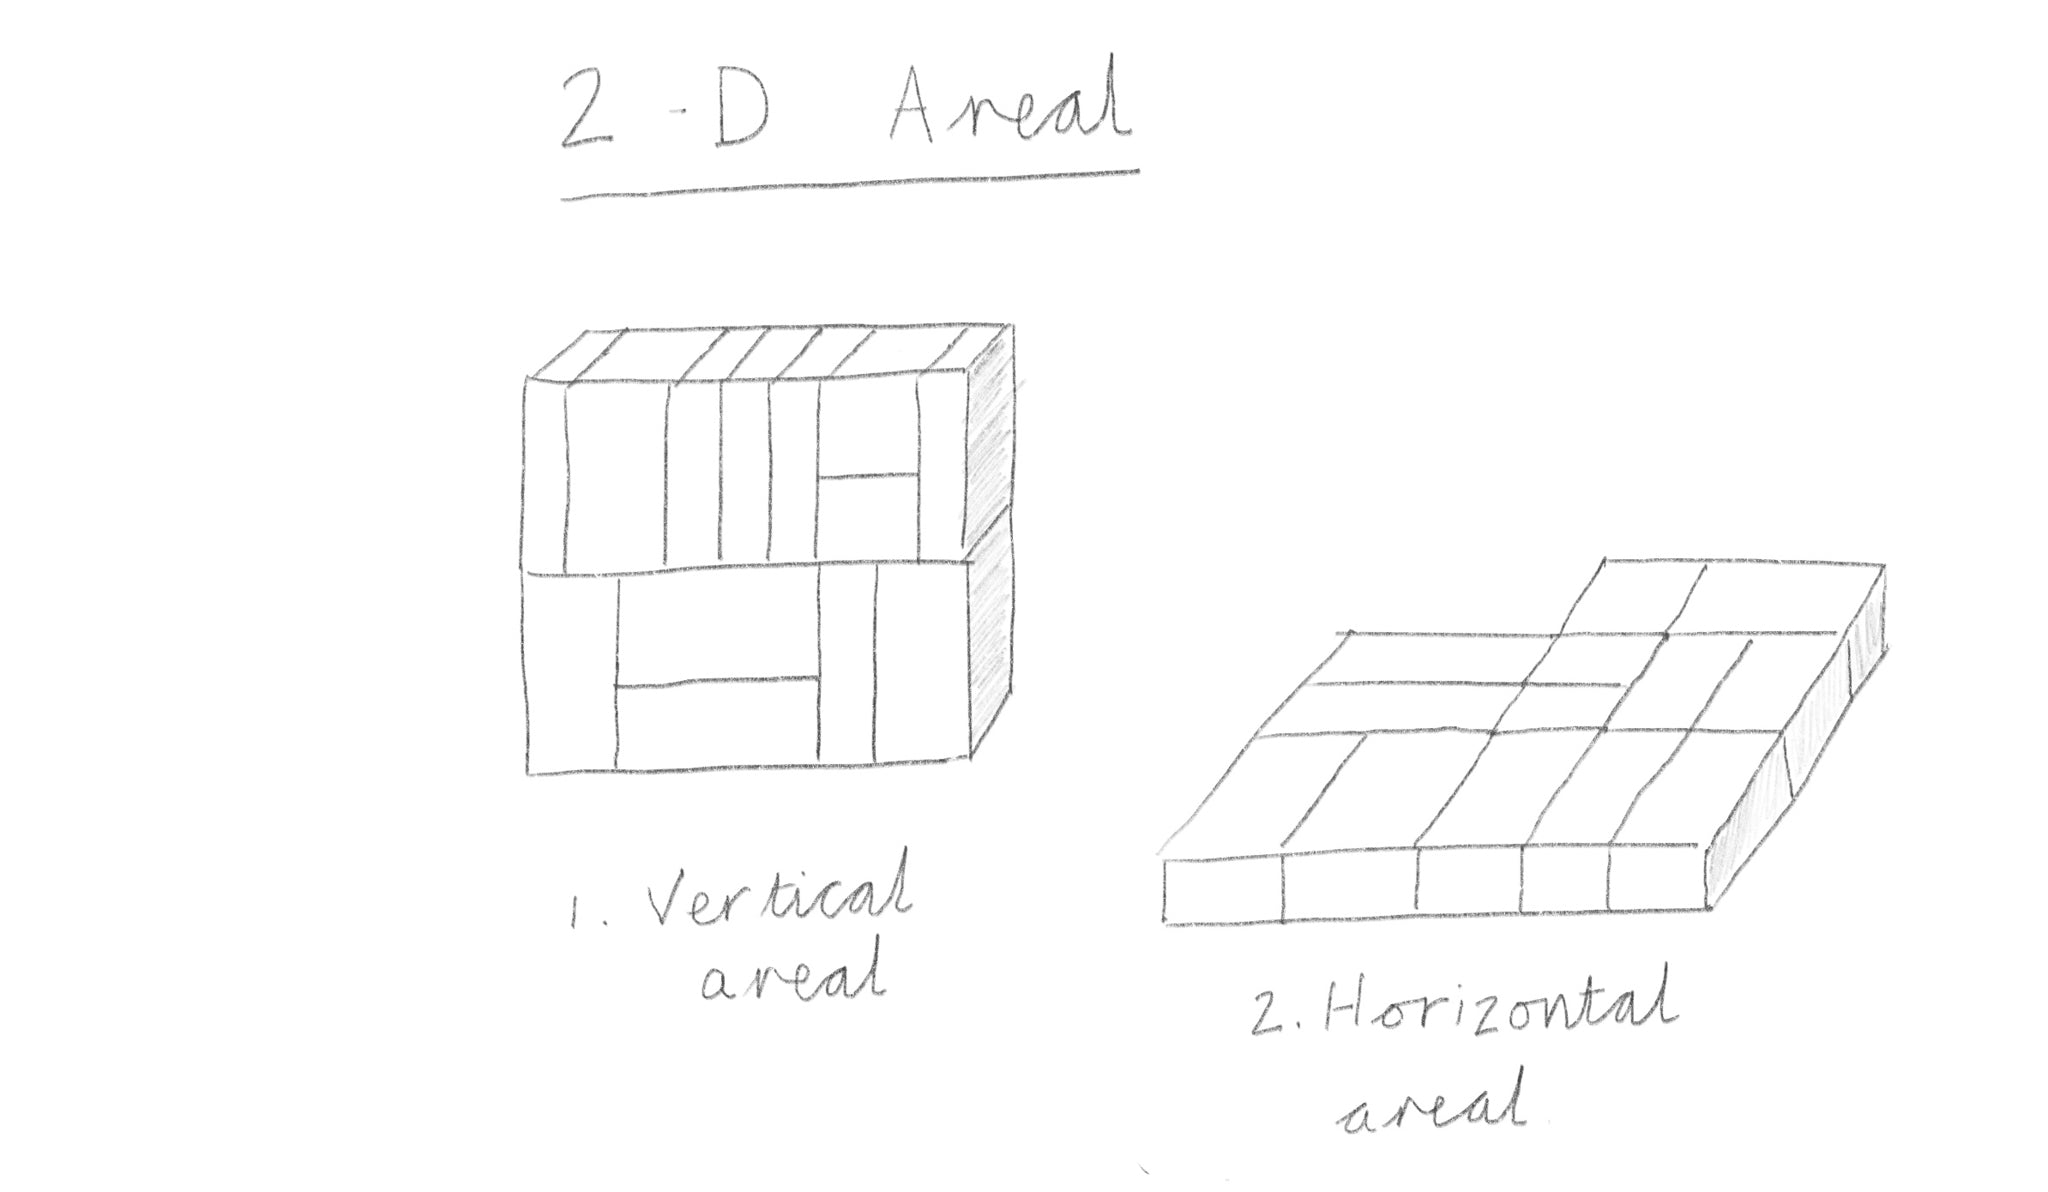 2-D areal block play